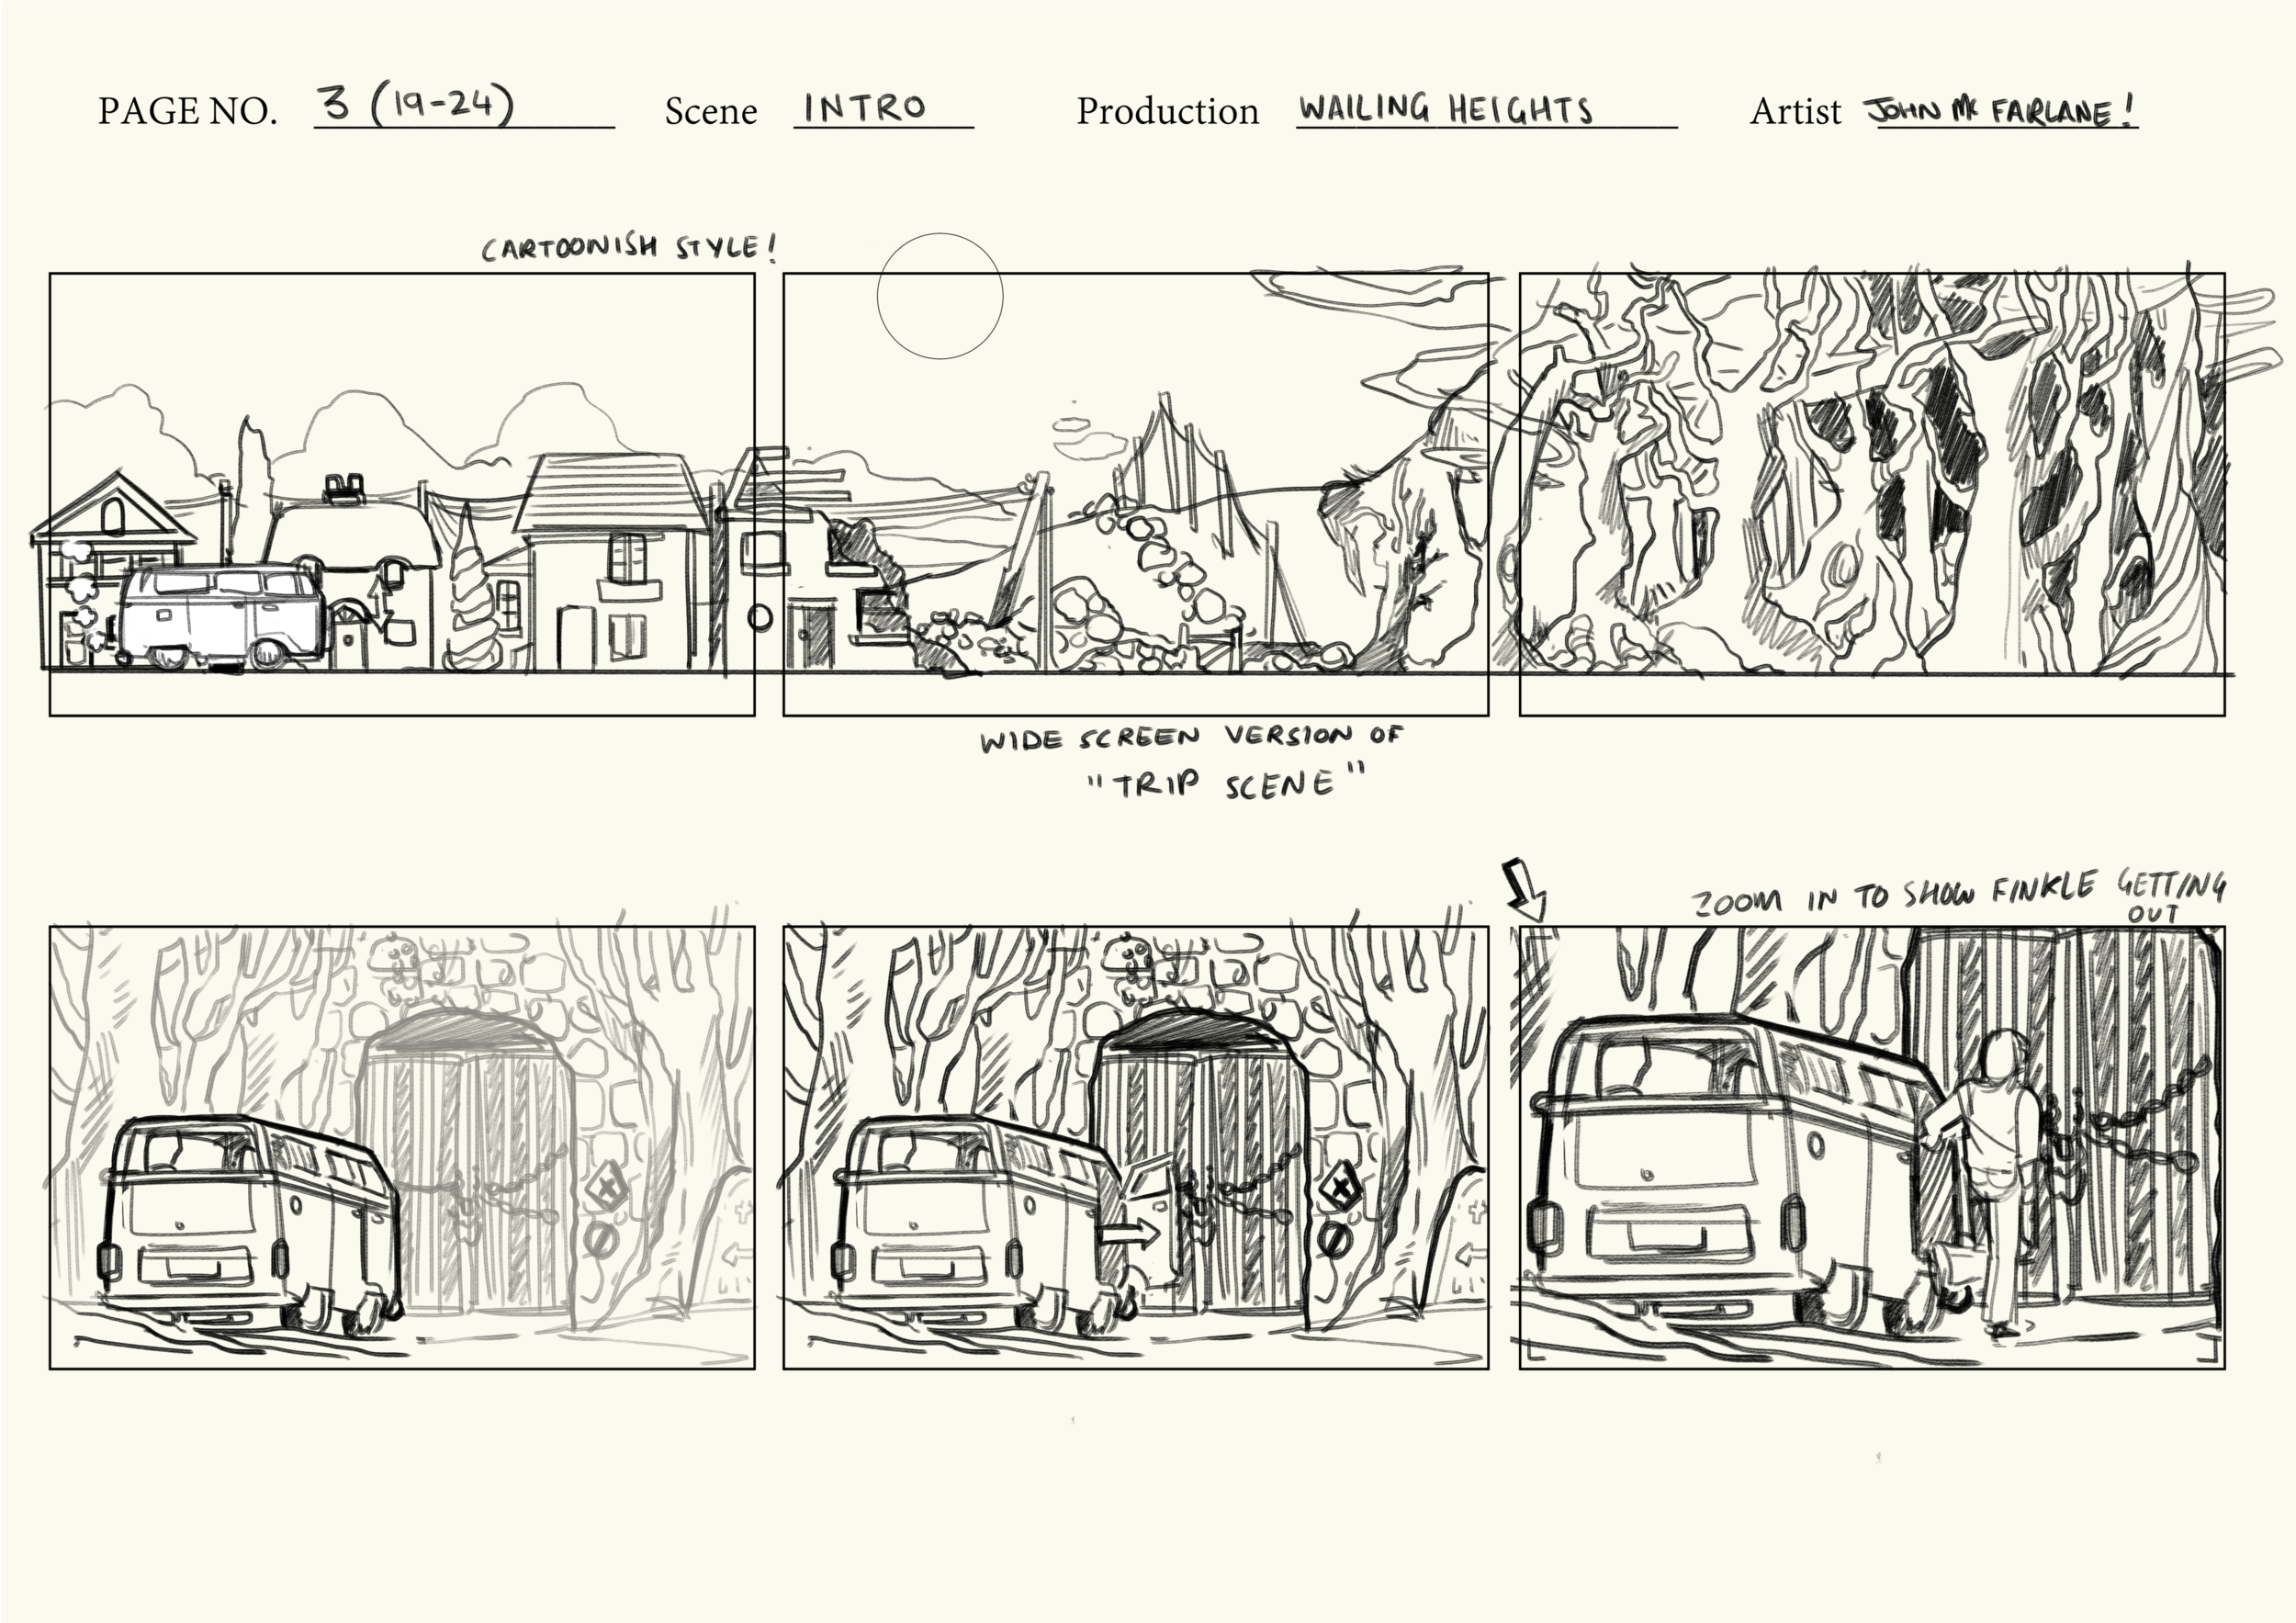 storyboards_intro_4.png